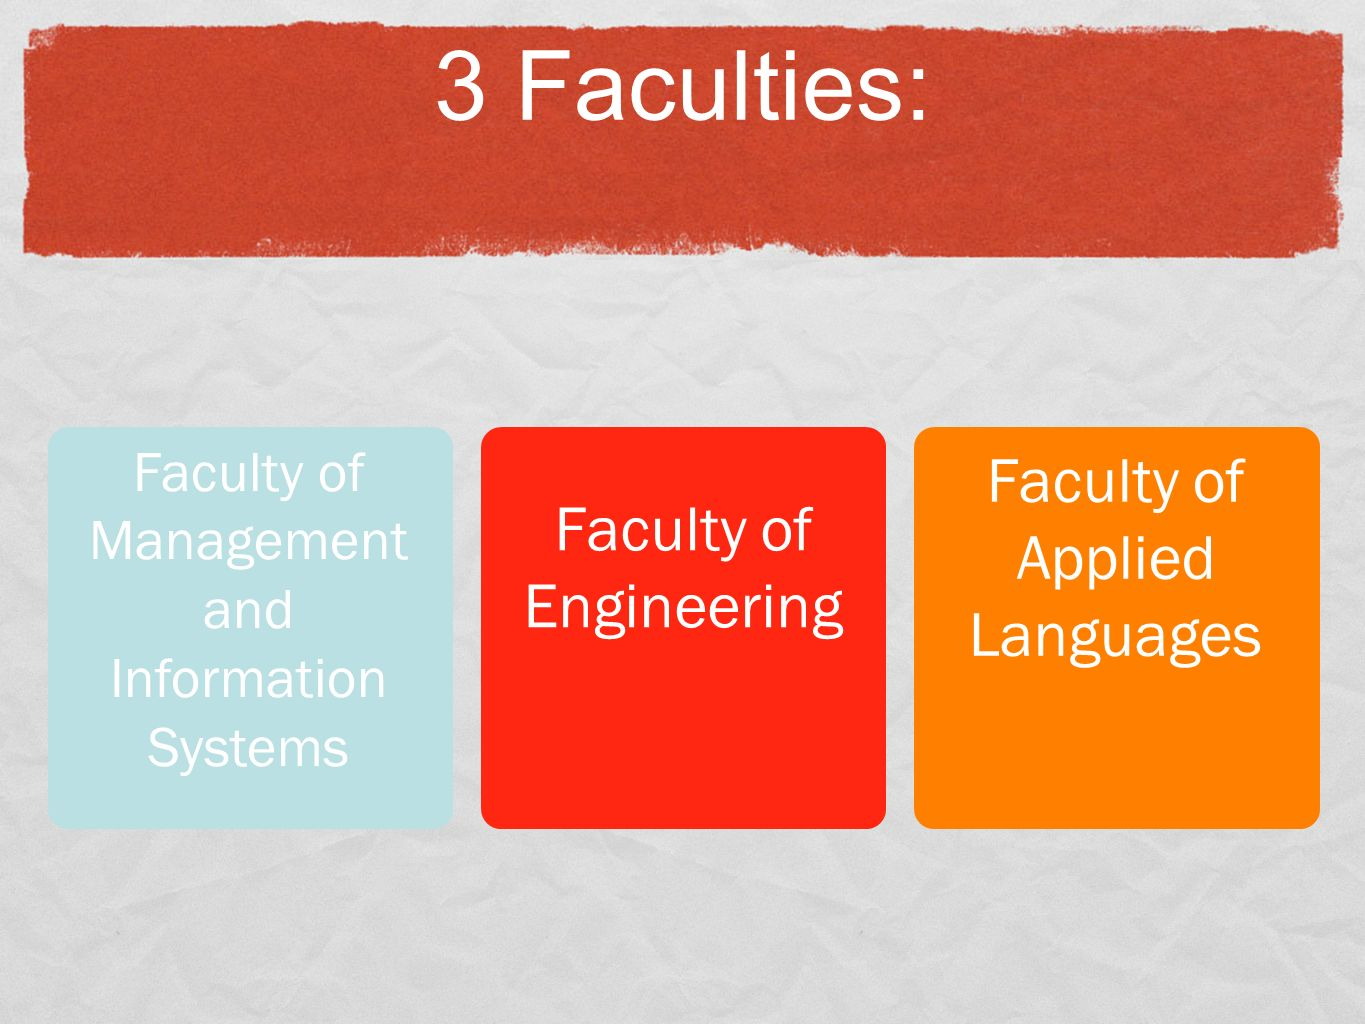 3 Faculties: Faculty of Management and Information Systems Faculty of Engineering Faculty of Applied Languages